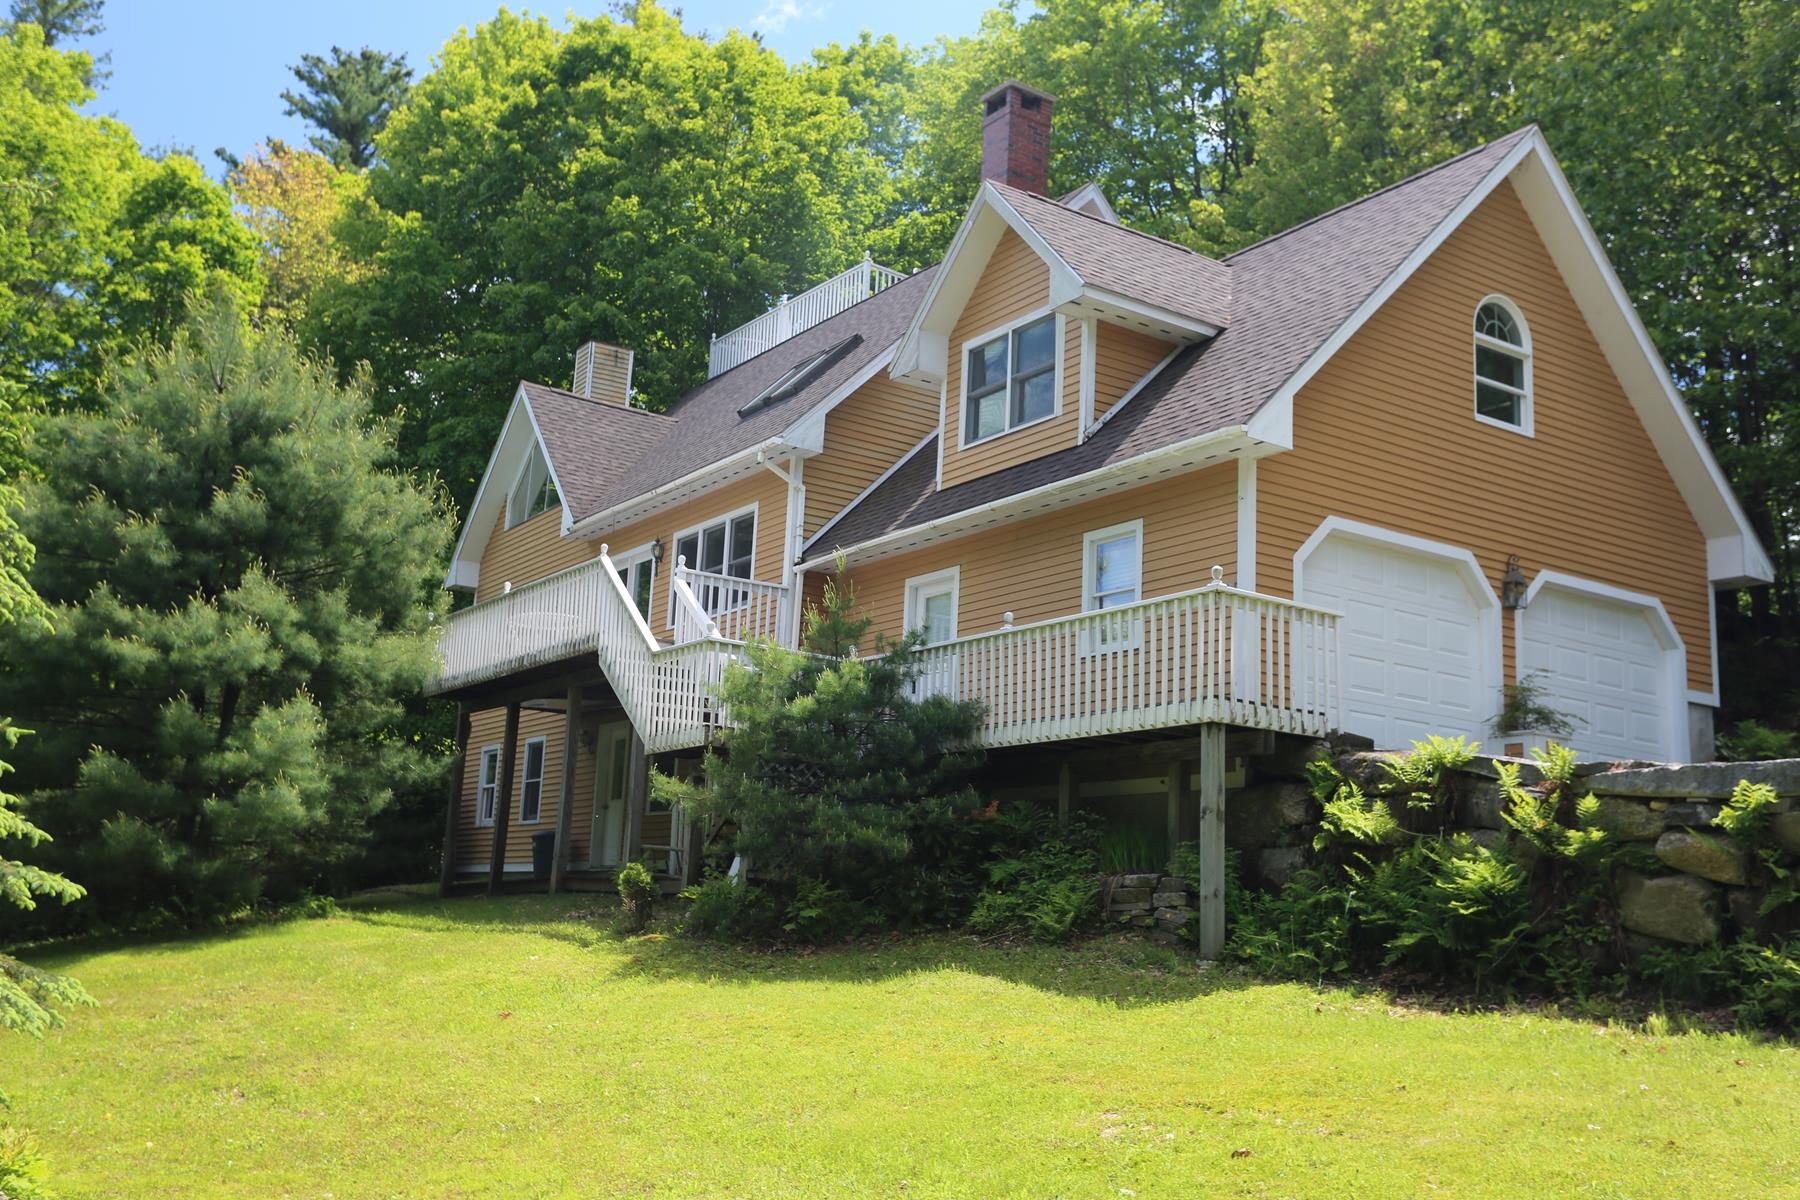 Single Family Home for Sale at 160 Burkehaven, Sunapee Sunapee, New Hampshire, 03782 United States